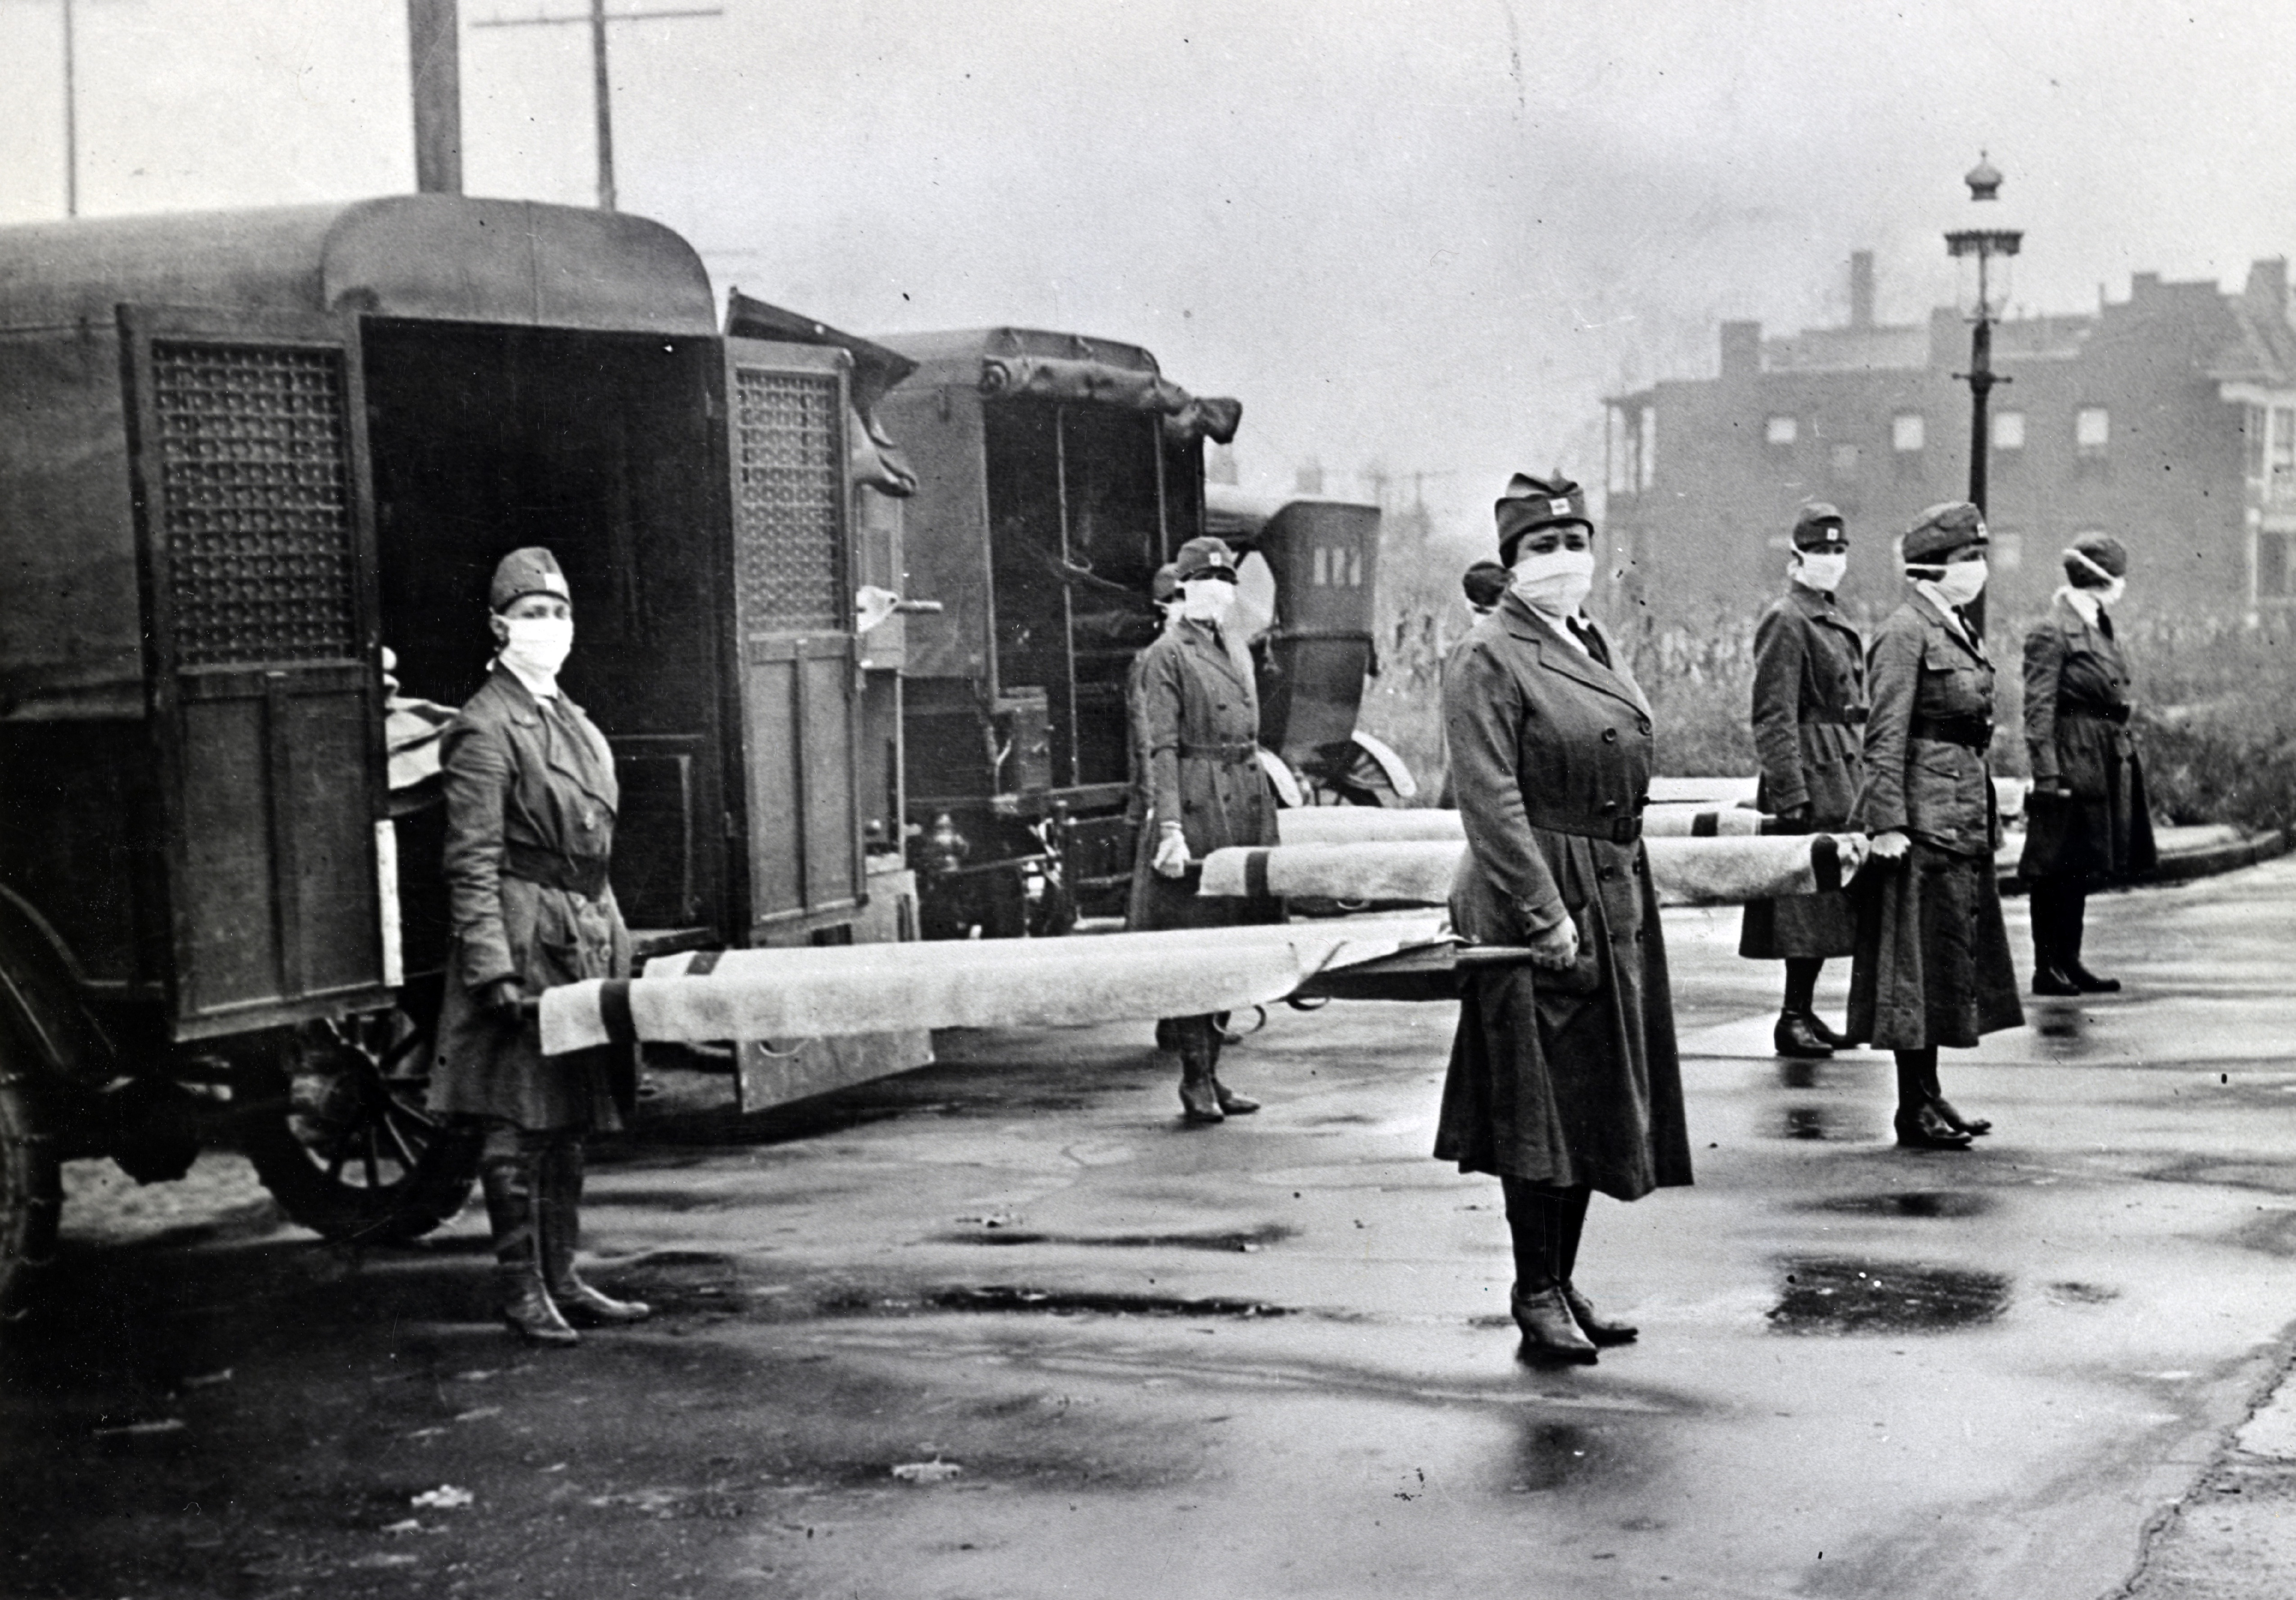 Red Cross Motor Corps on duty during the Spanish Influenza epidemic, 1918 (Getty Images)